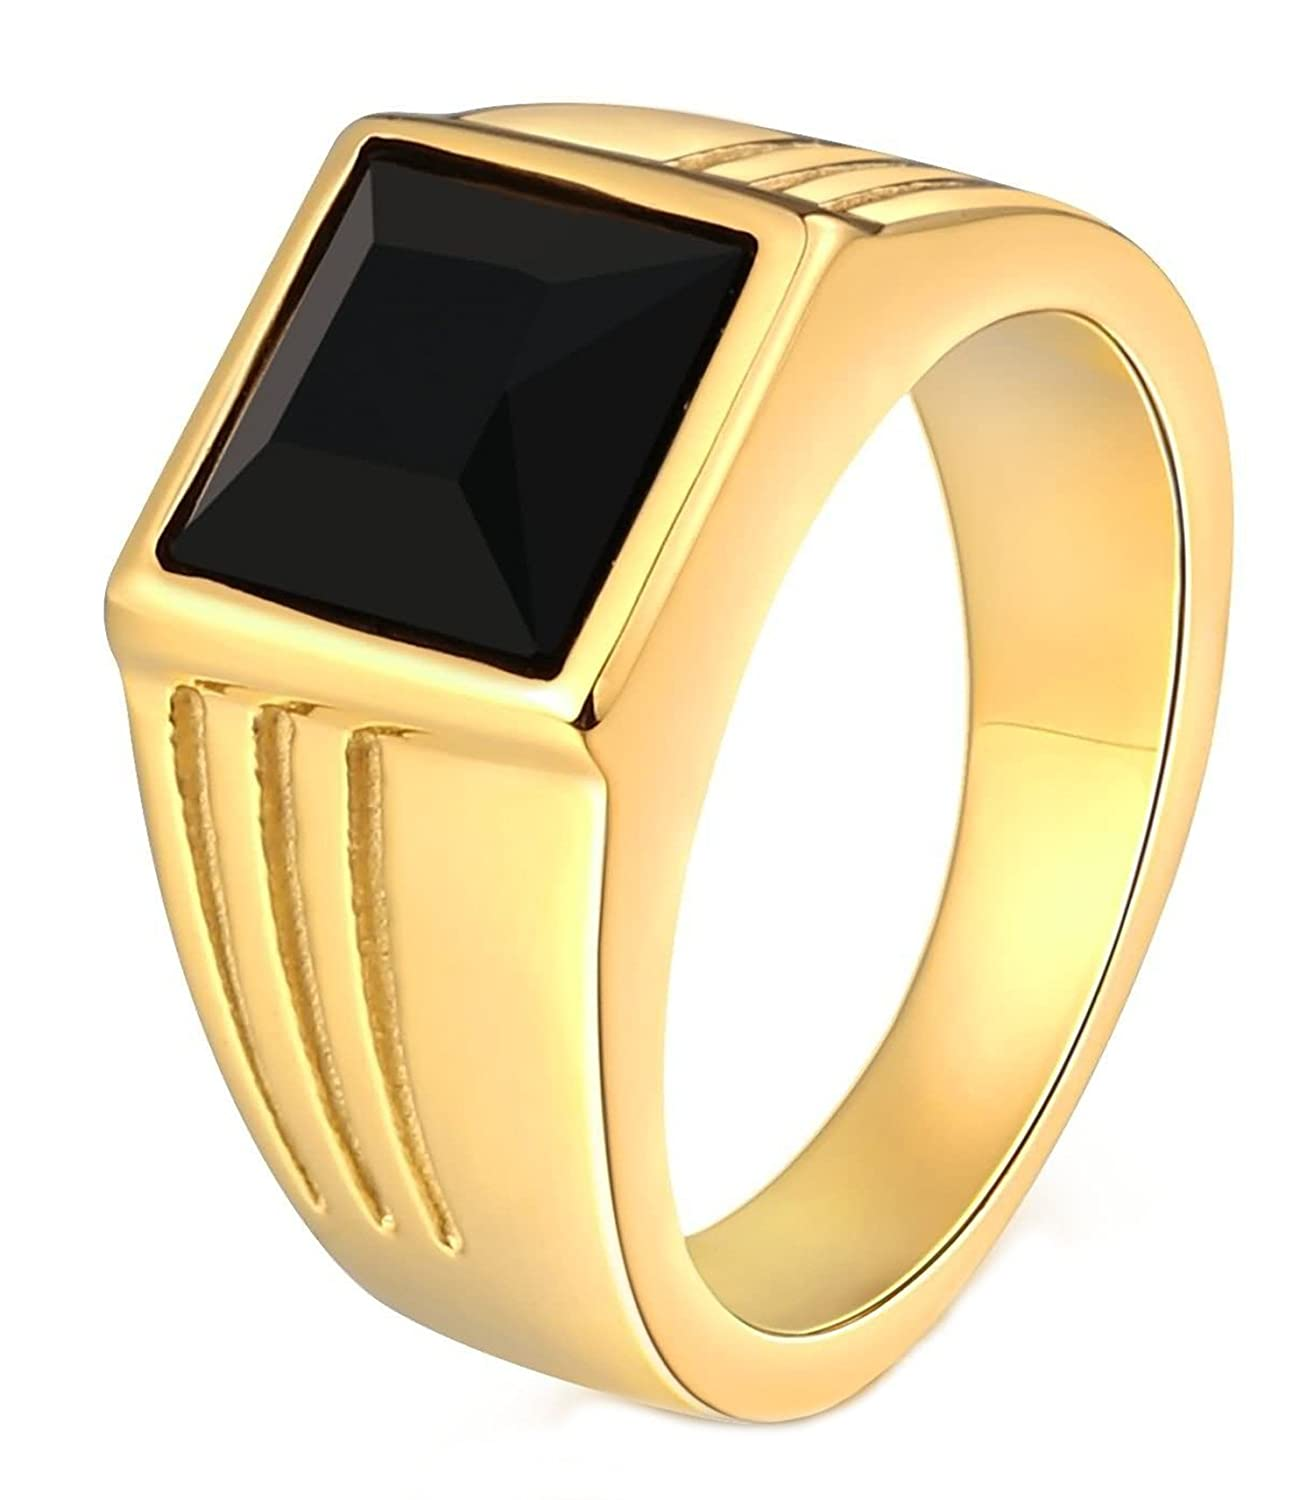 Gnzoe Men Stainless Steel Ring for Boy Father Gift Class Ring Black CZ Stone Princess Cut 10MM GLZH1J49FGHSH856